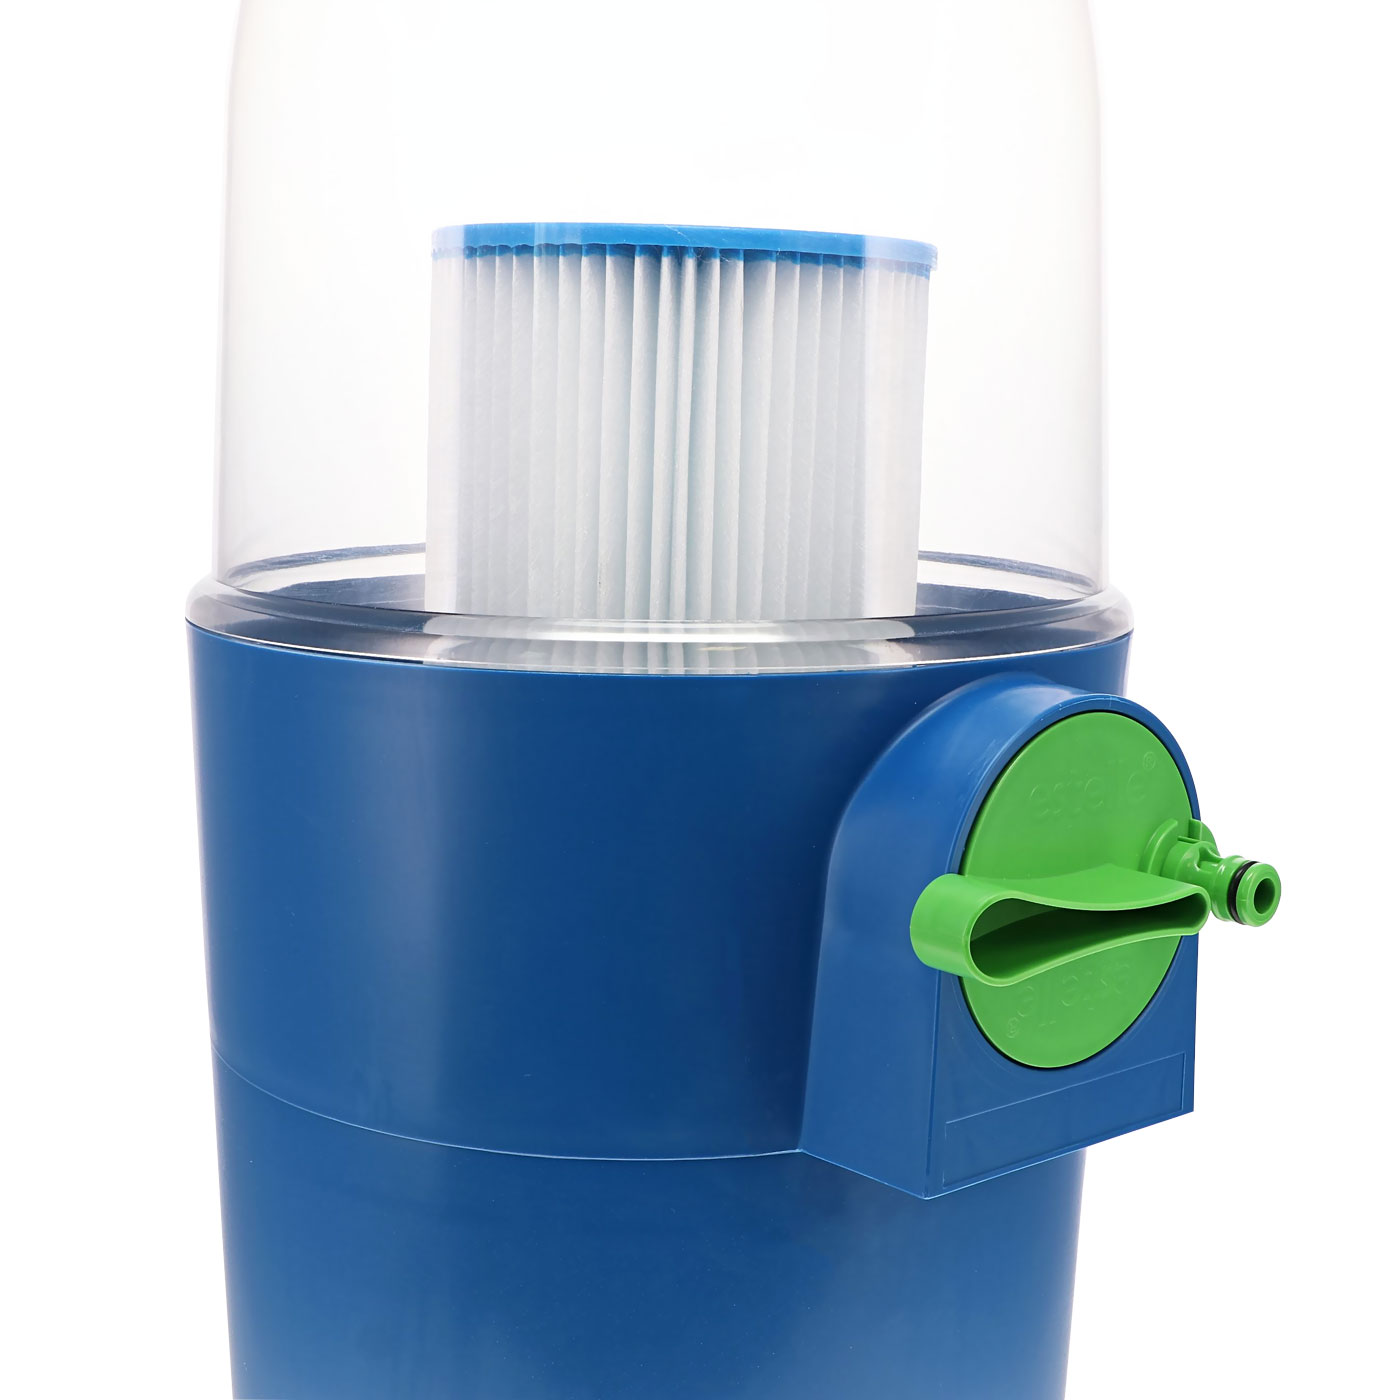 Automatic cleaning system for spa filter